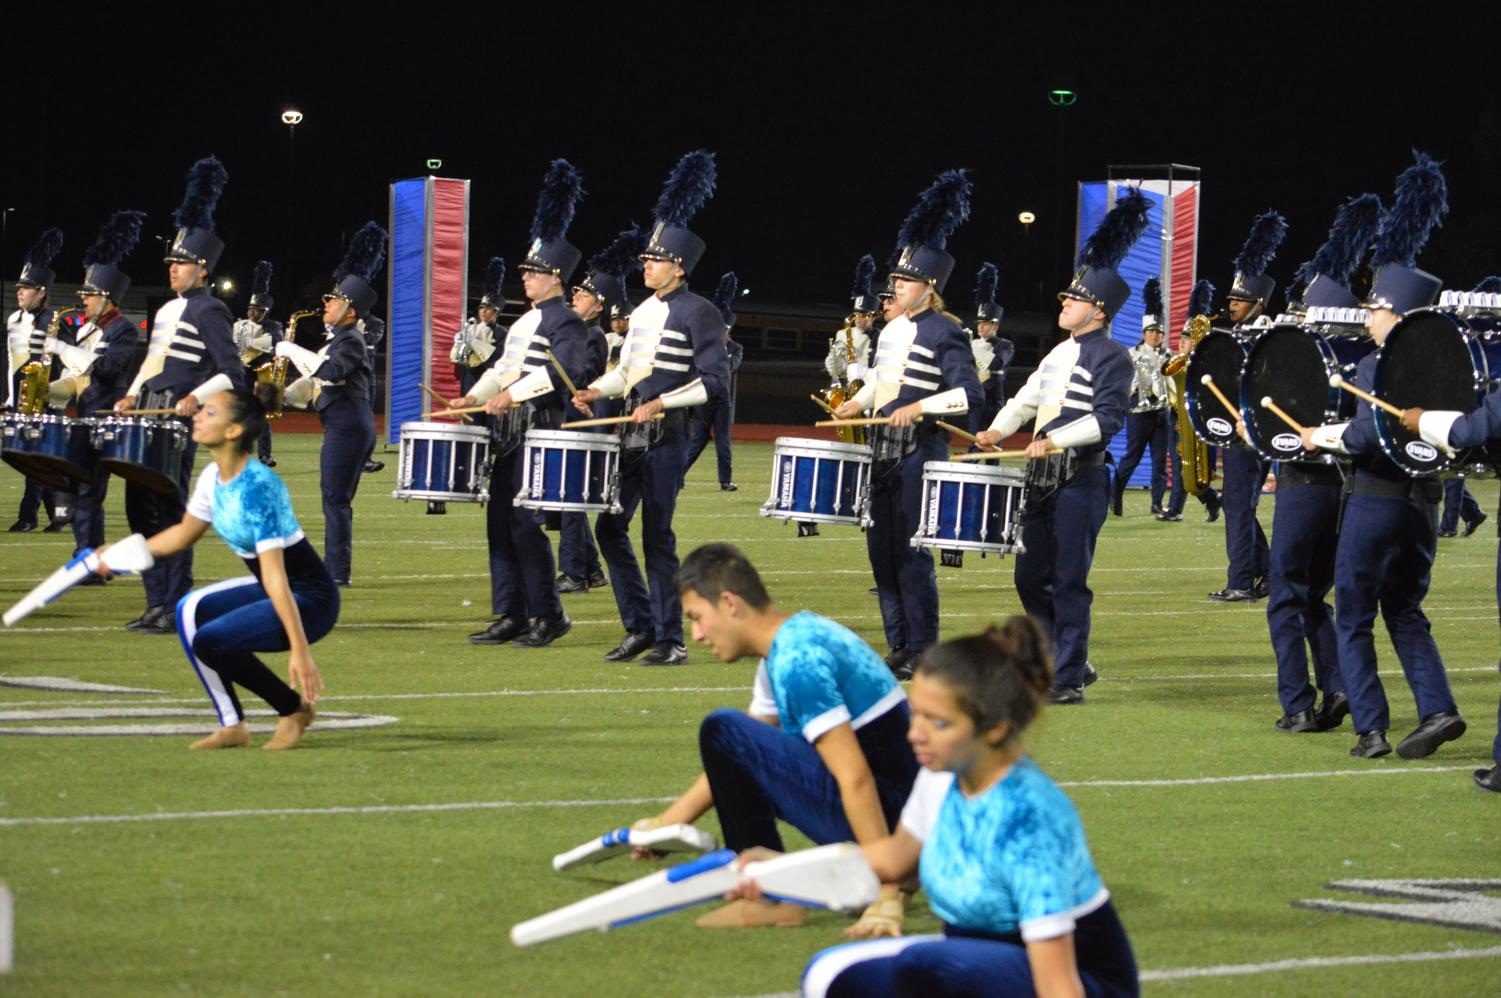 The colorguard, drumline, and band preform their show at a football game.